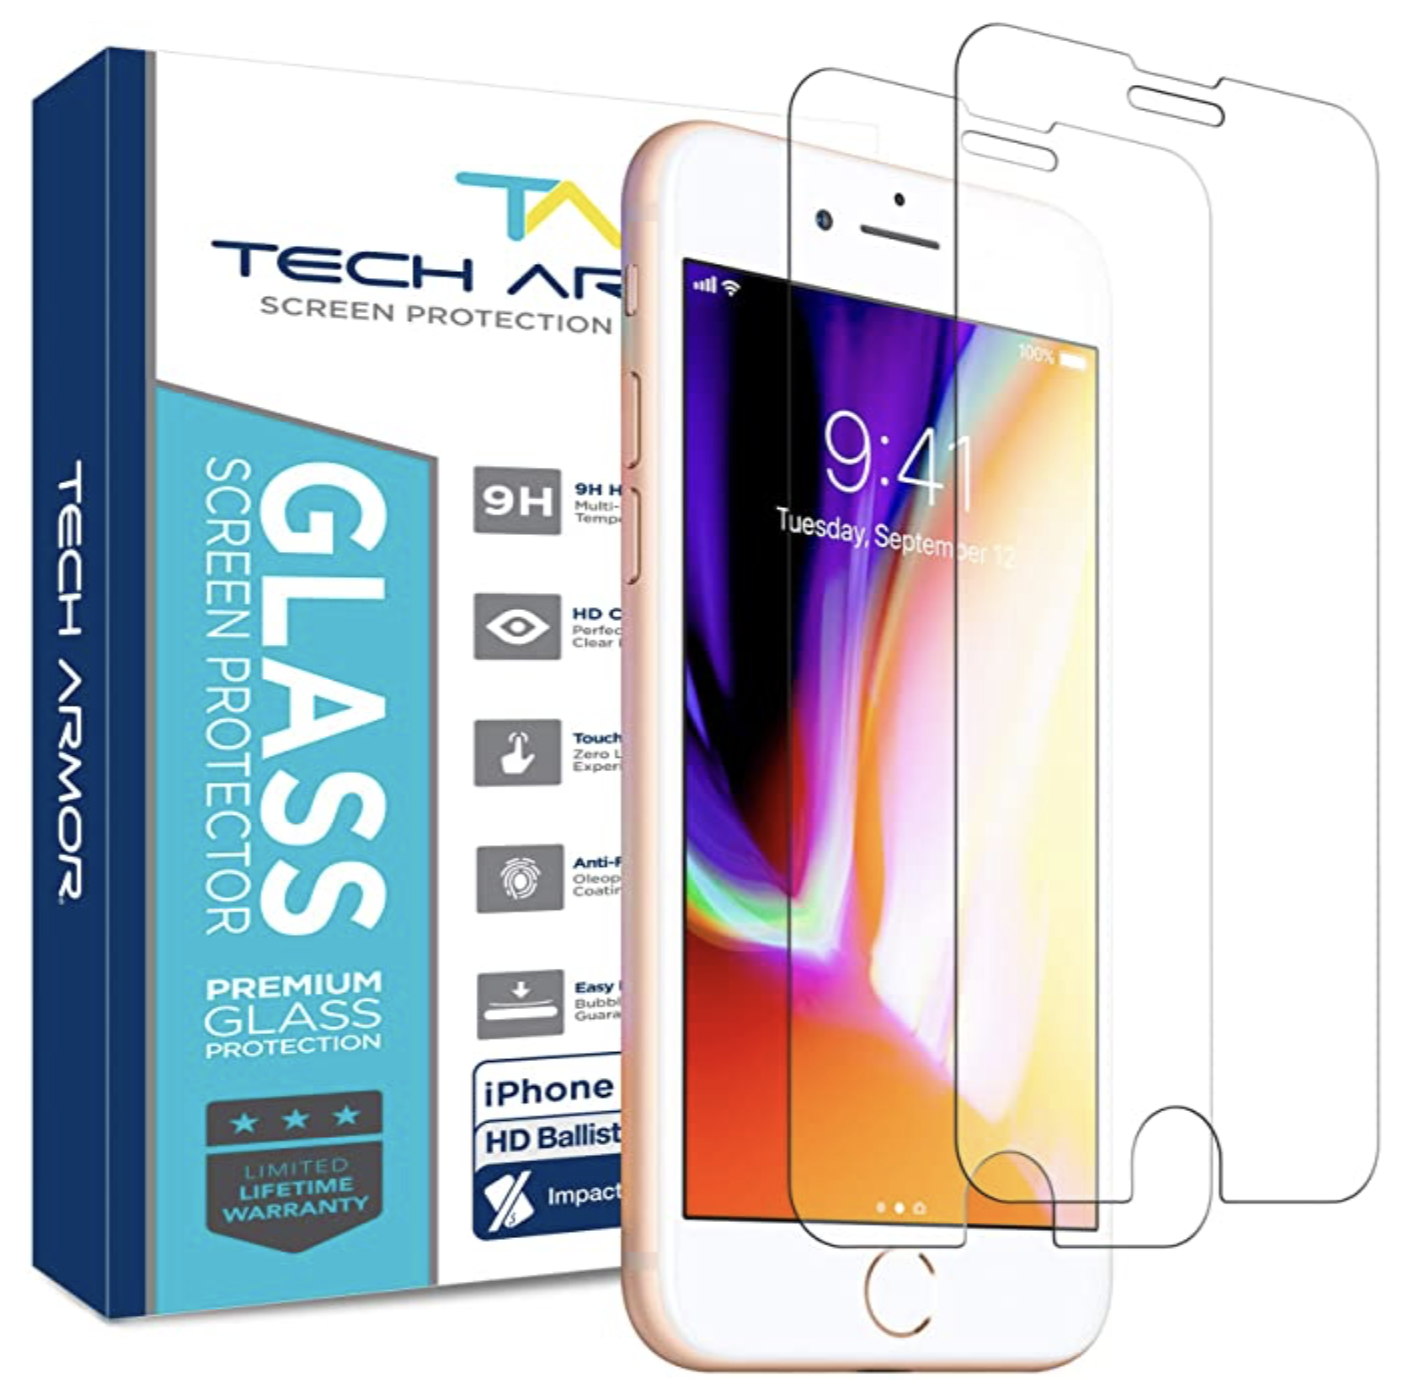 Tech Armor ELITE HD Clear Screen Protector for iPhone 7 - 2pk